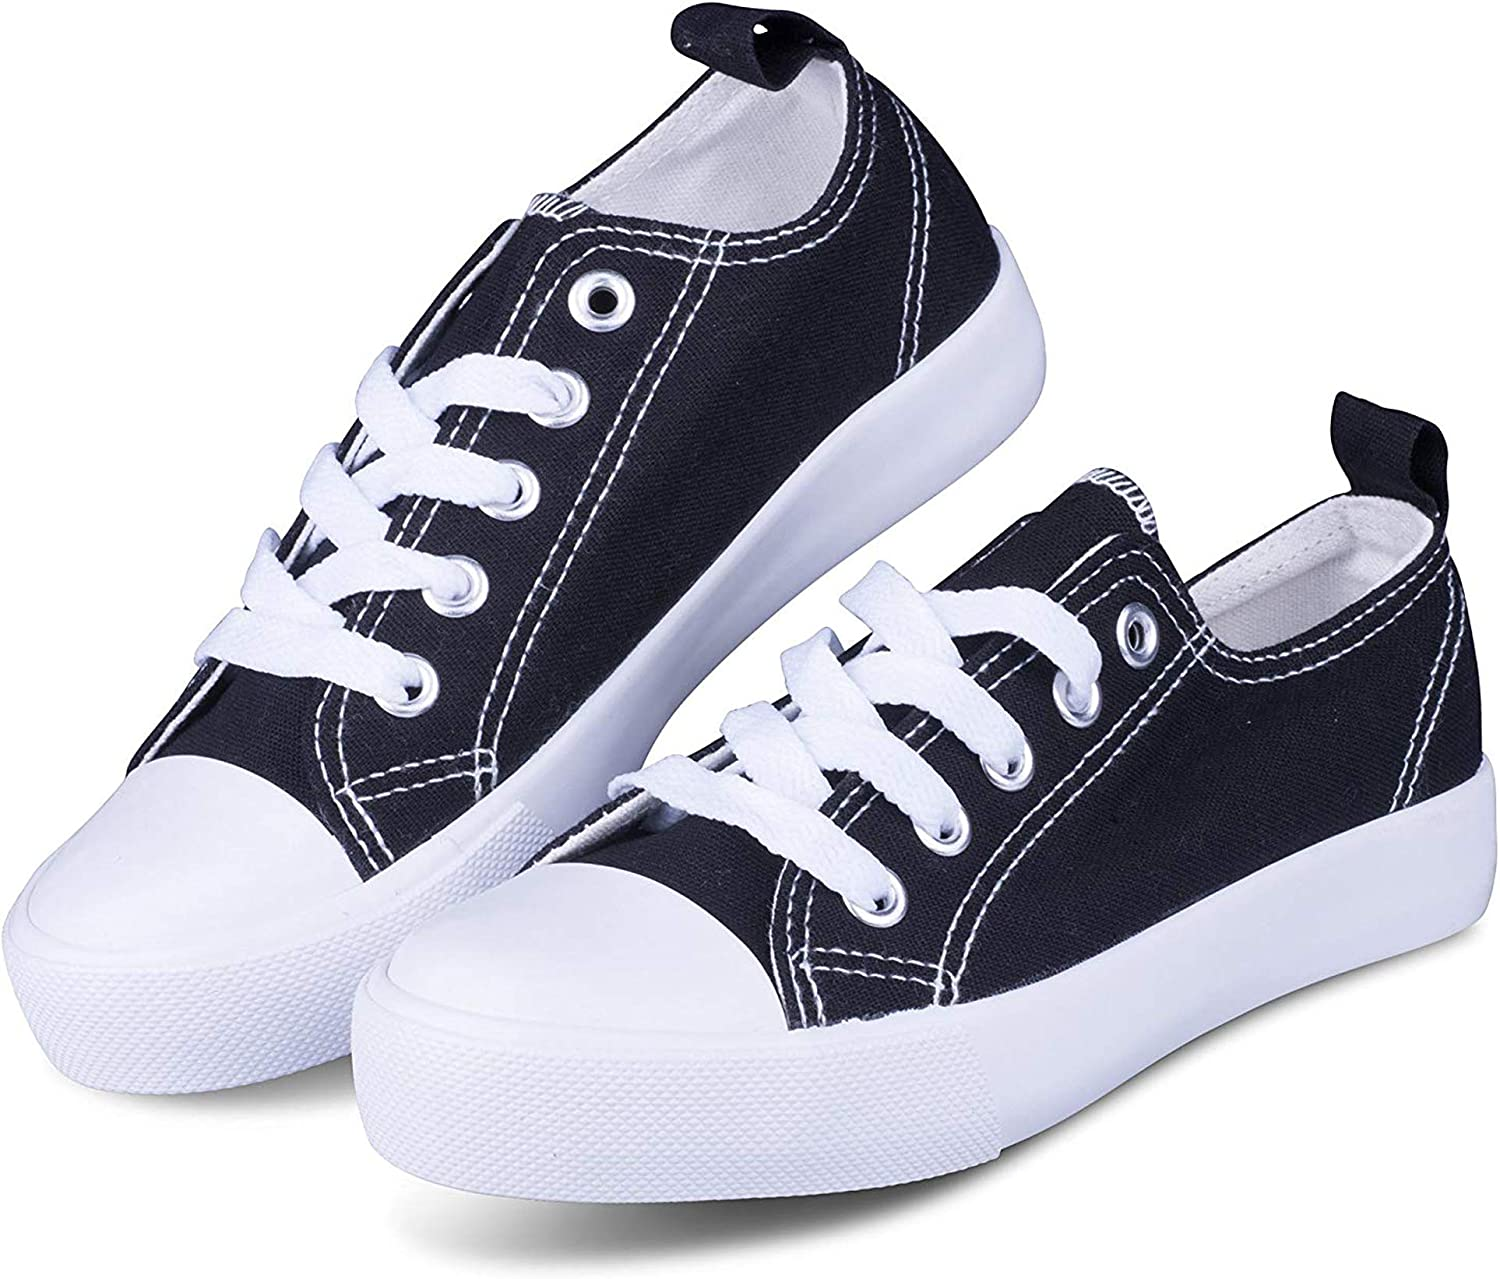 Girls Canvas Shoes Tie up Slip on Sneakers Causal Comfortable Cap Toe Shoes